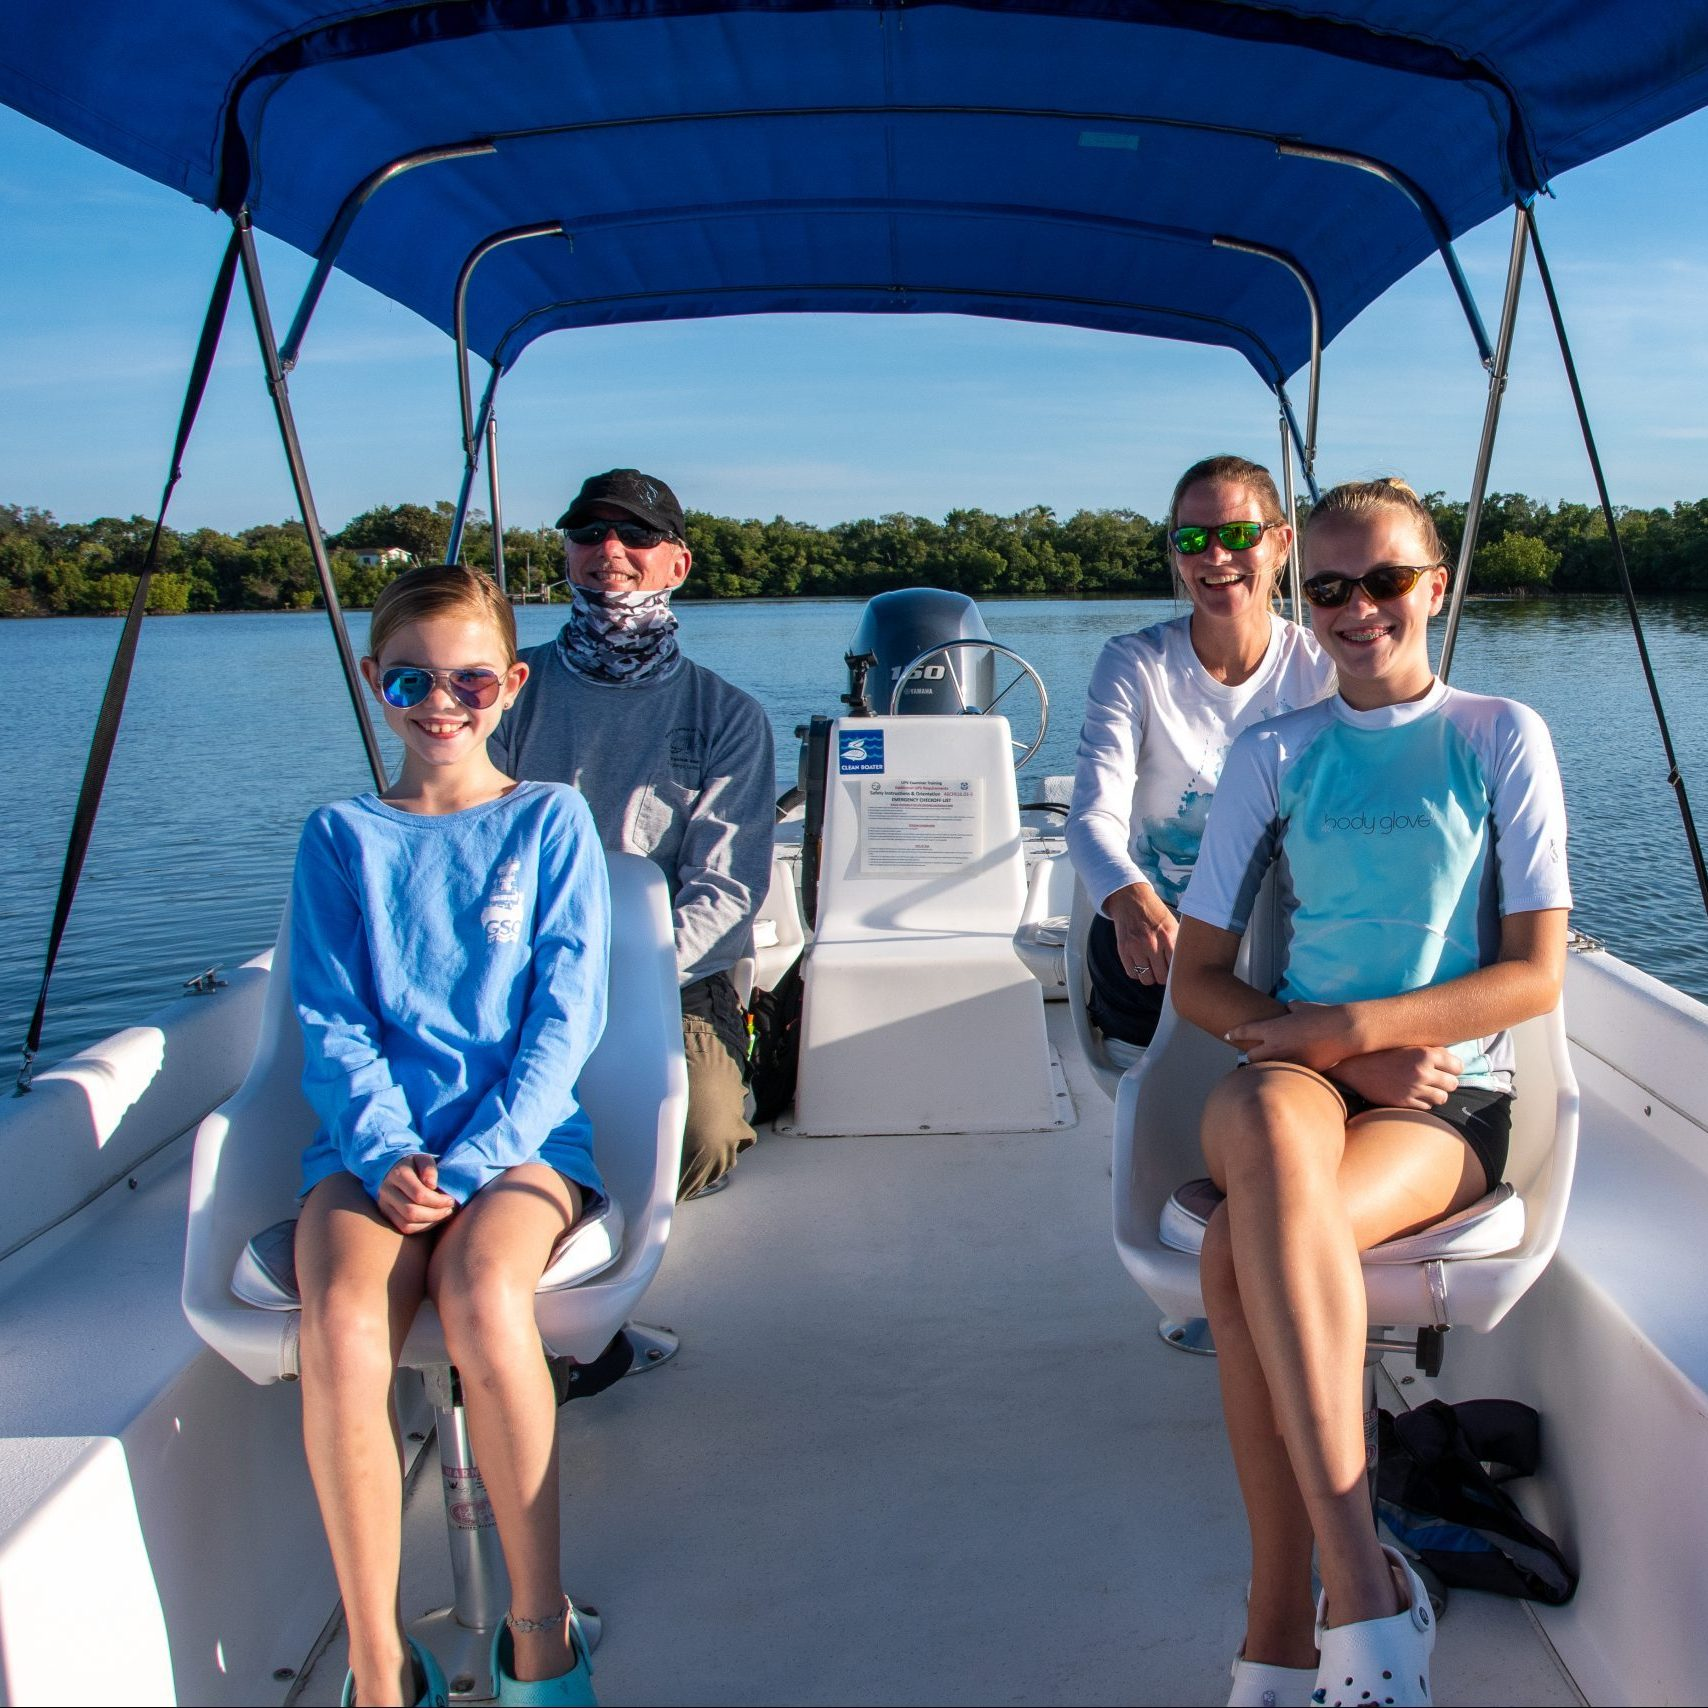 Boat Tours | Family | Eco-Tours | Dolphins, Manatees, Birds and Wildlife | Rookery Bay Research Reserve